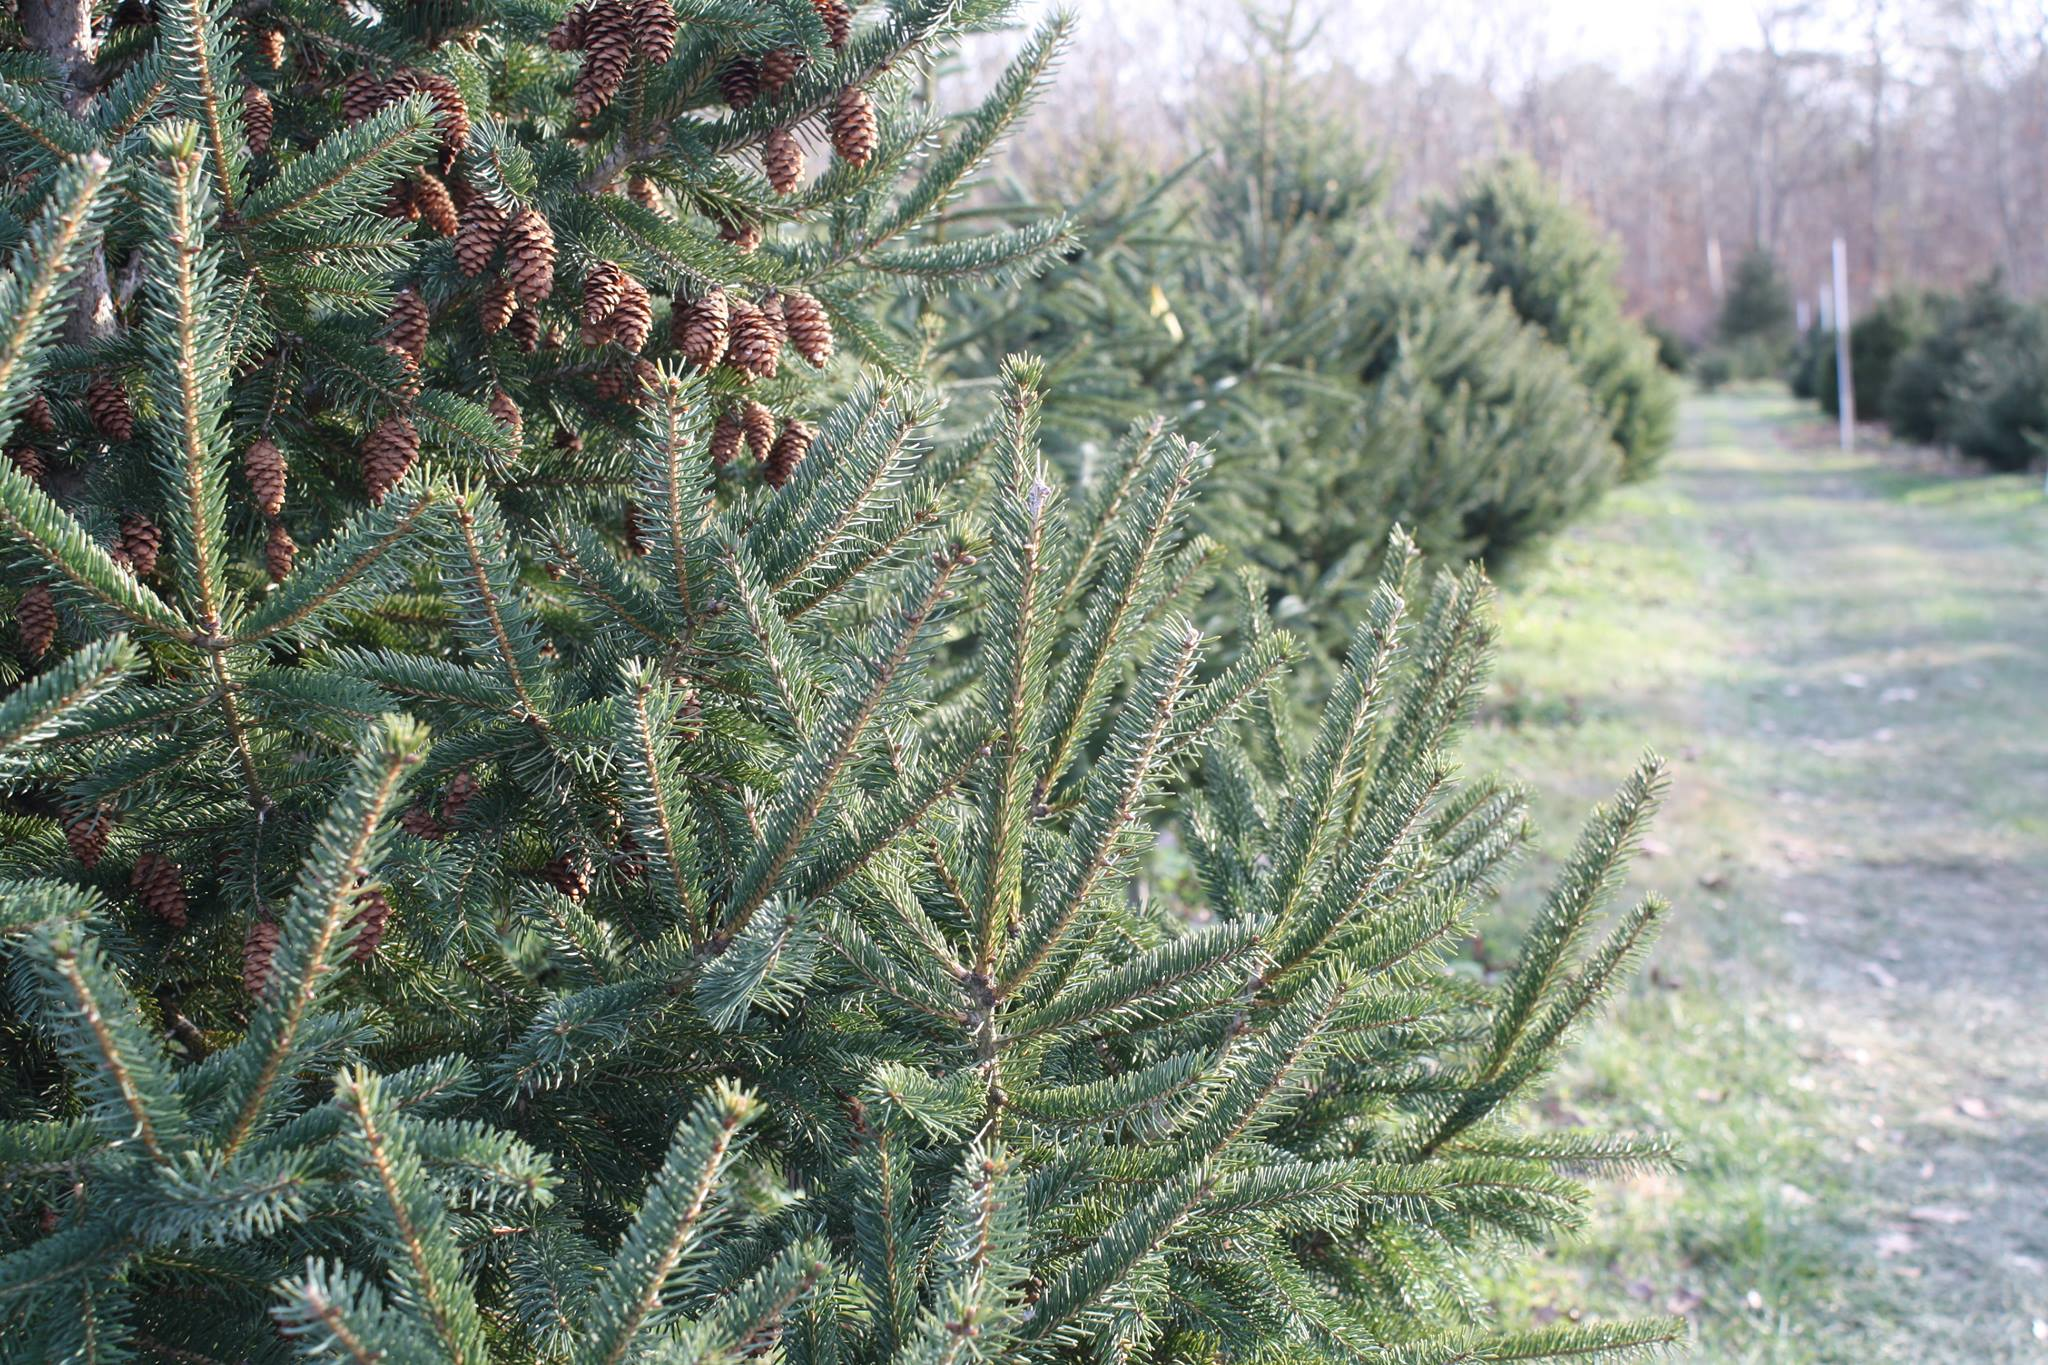 mikes christmas tree farm is a family owned business with thousands of trees to choose from cutting your own tree at mikes christmas tree farm is a